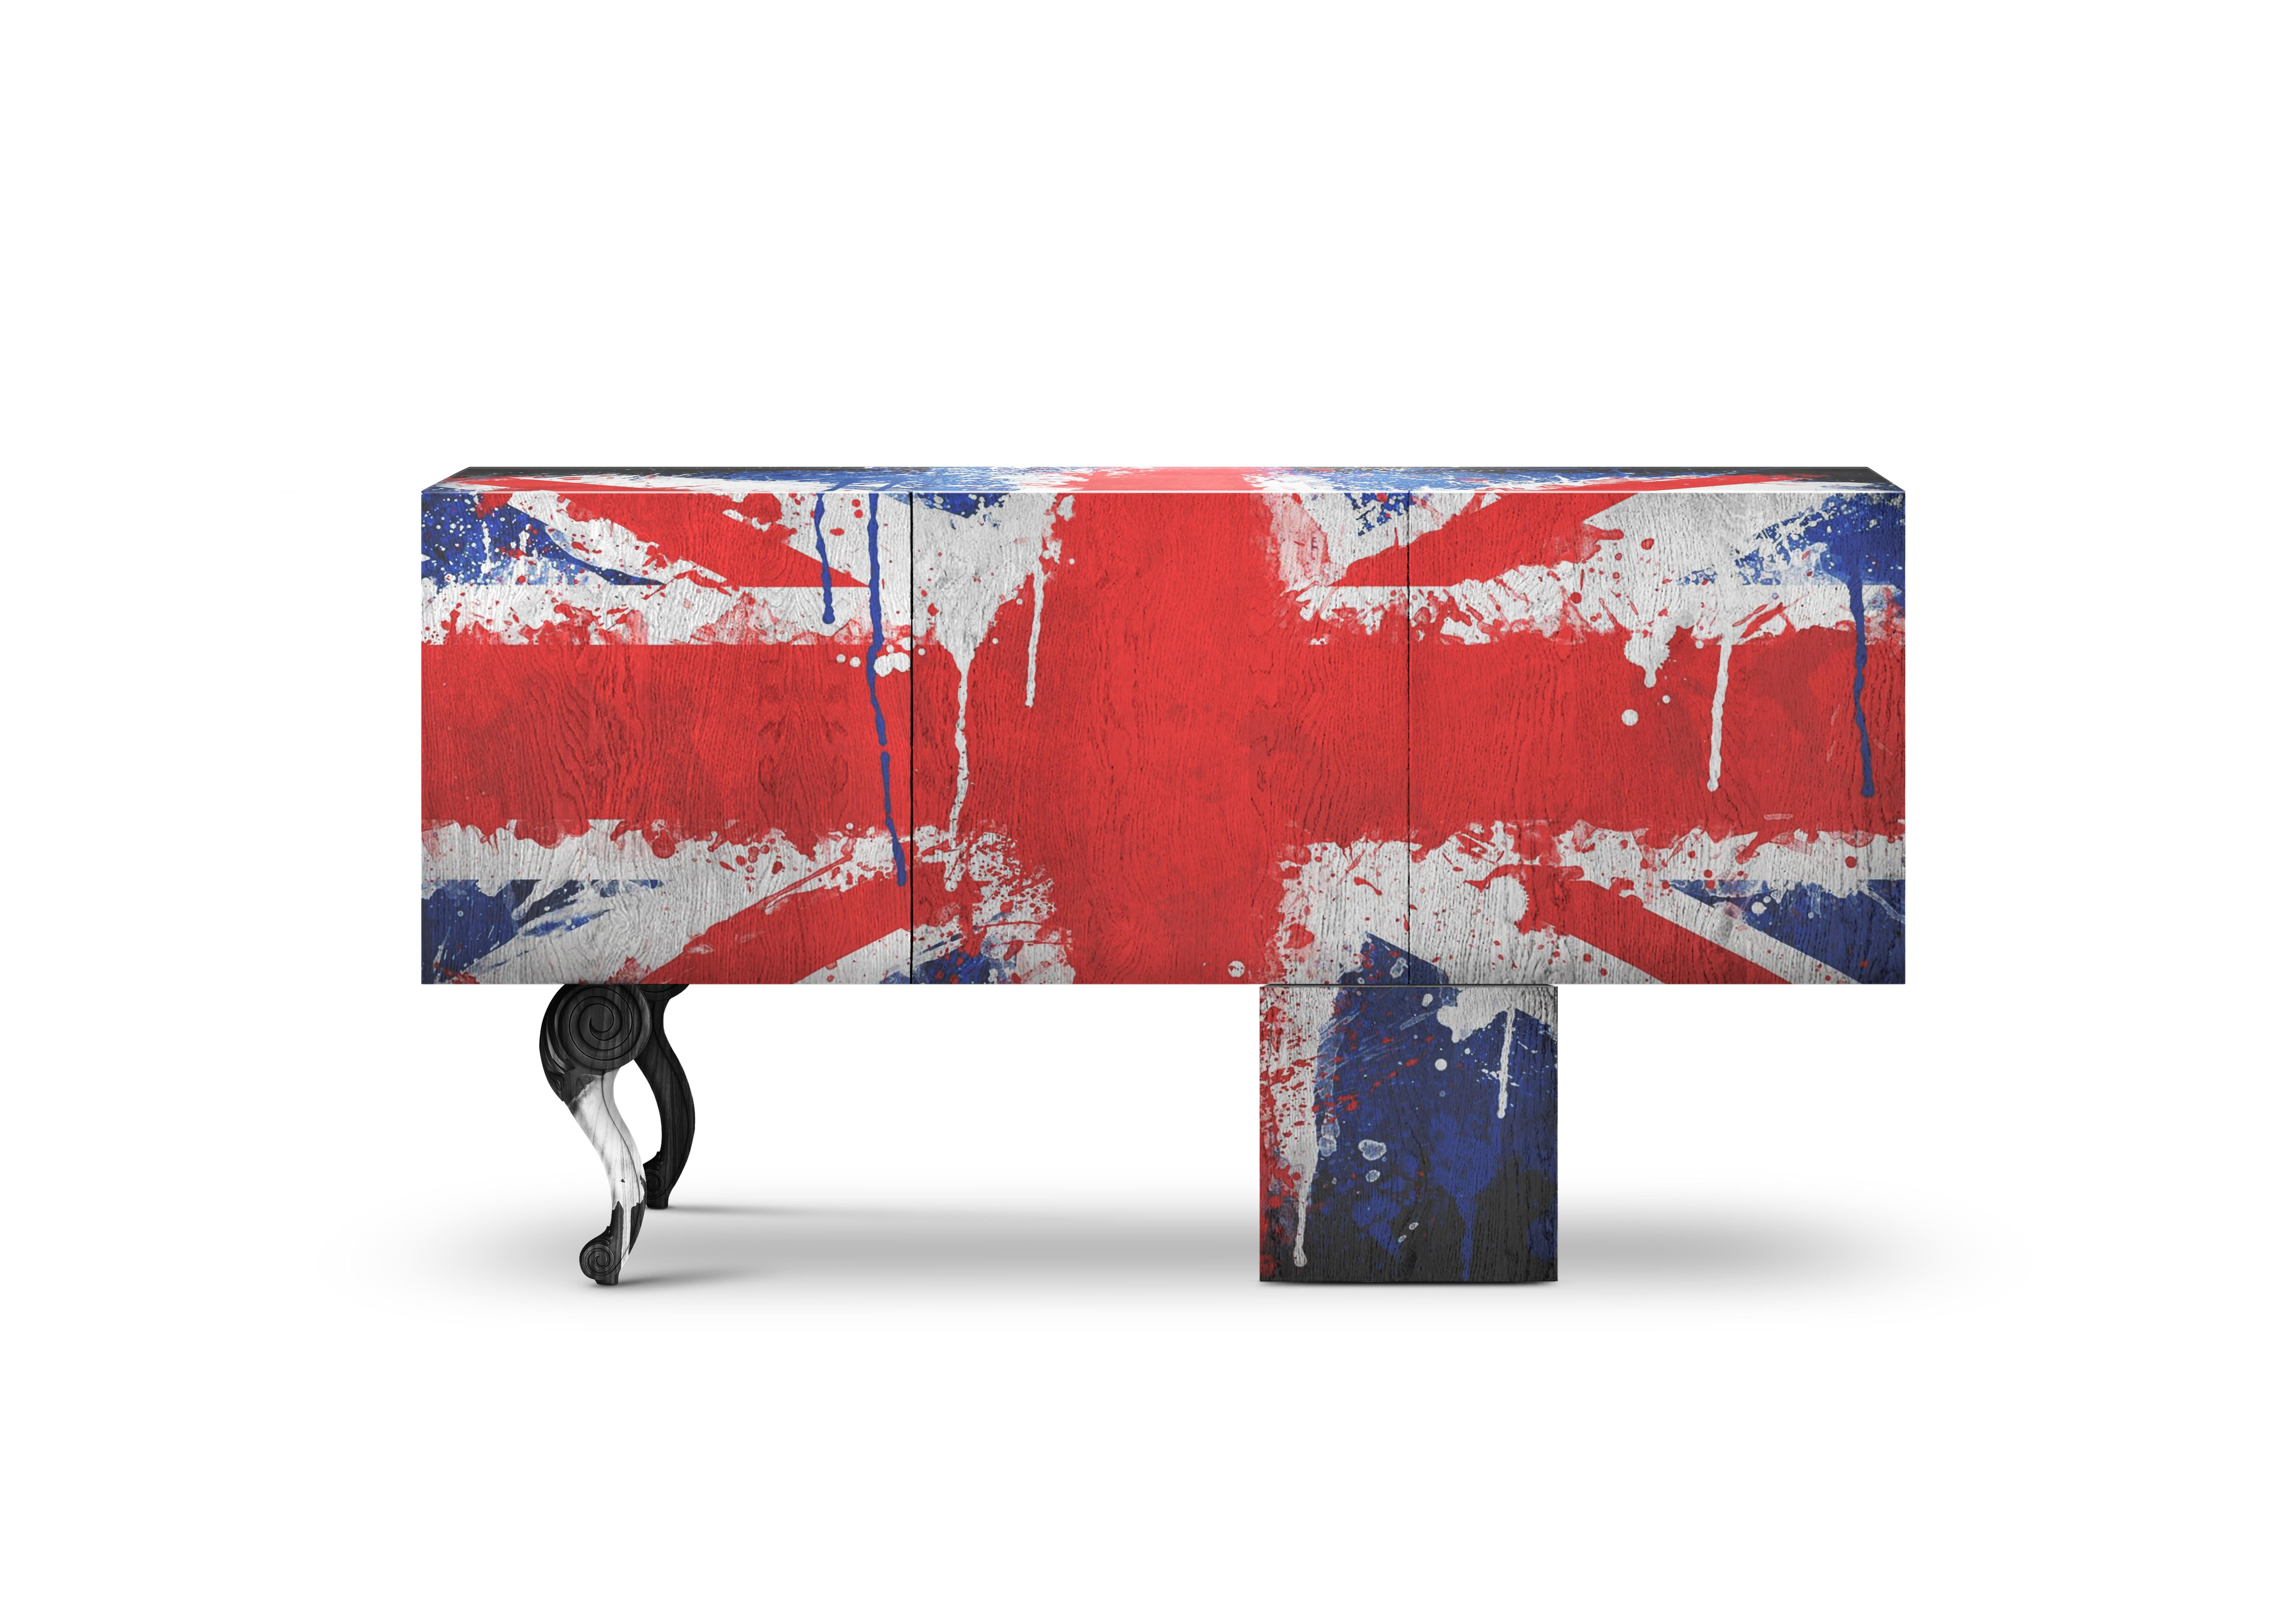 Credenza Definition In Art : Contemporary brexit sideboard or credenza with graffiti art and